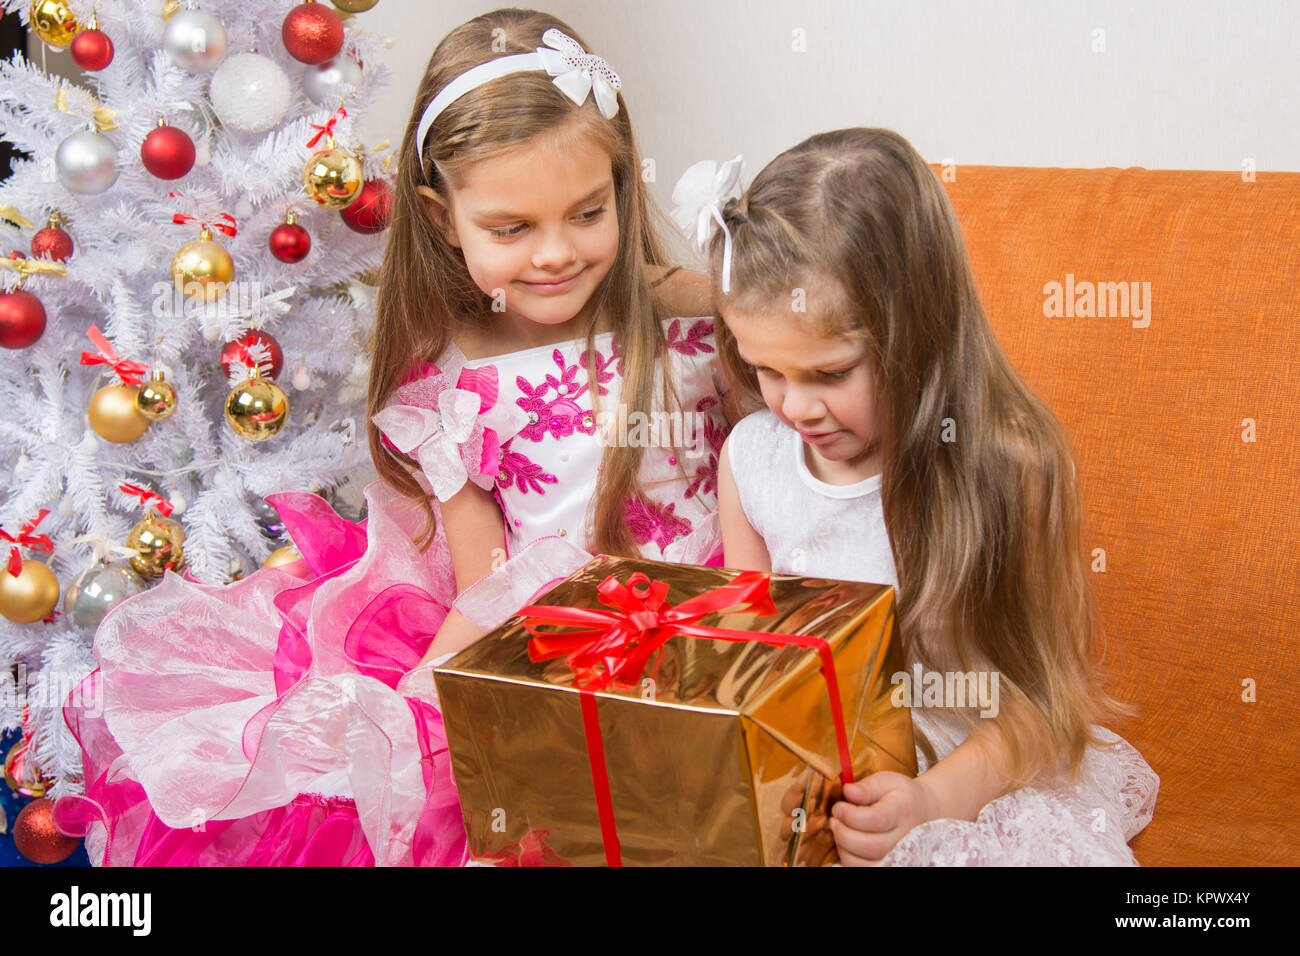 Girl encourages another girl who gave the wrong gift - Stock Image